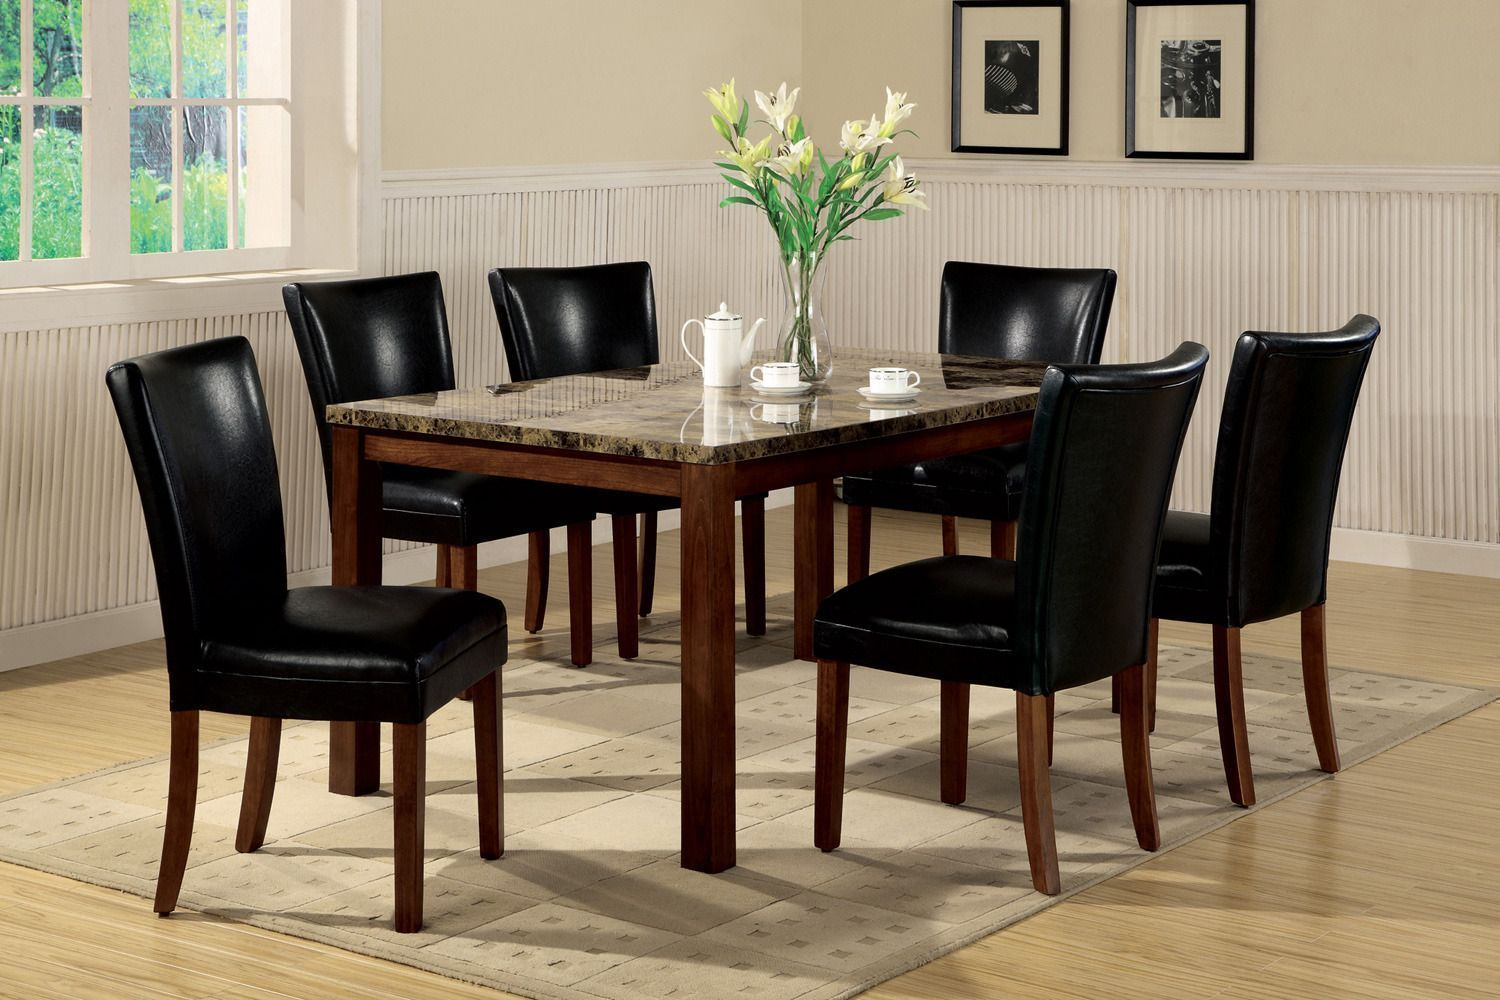 Telegraph Rectangluar Leg Table Dining Room Set Coaster Furniture